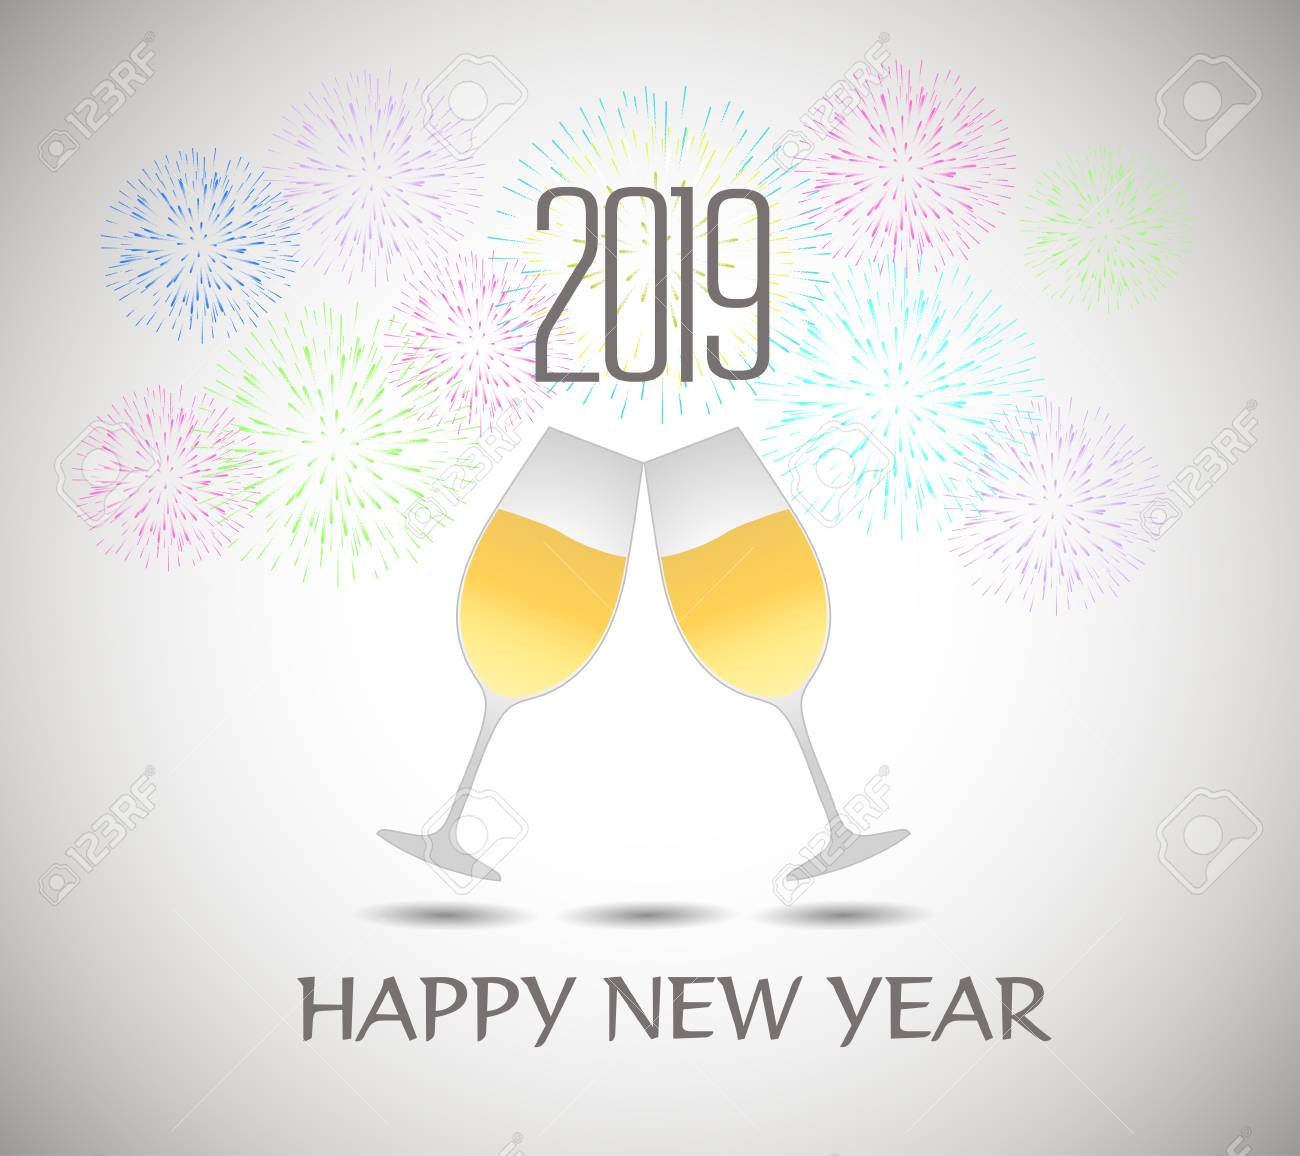 happy new year 2019 template vector illustration with champagne glasses stock vector 98015168